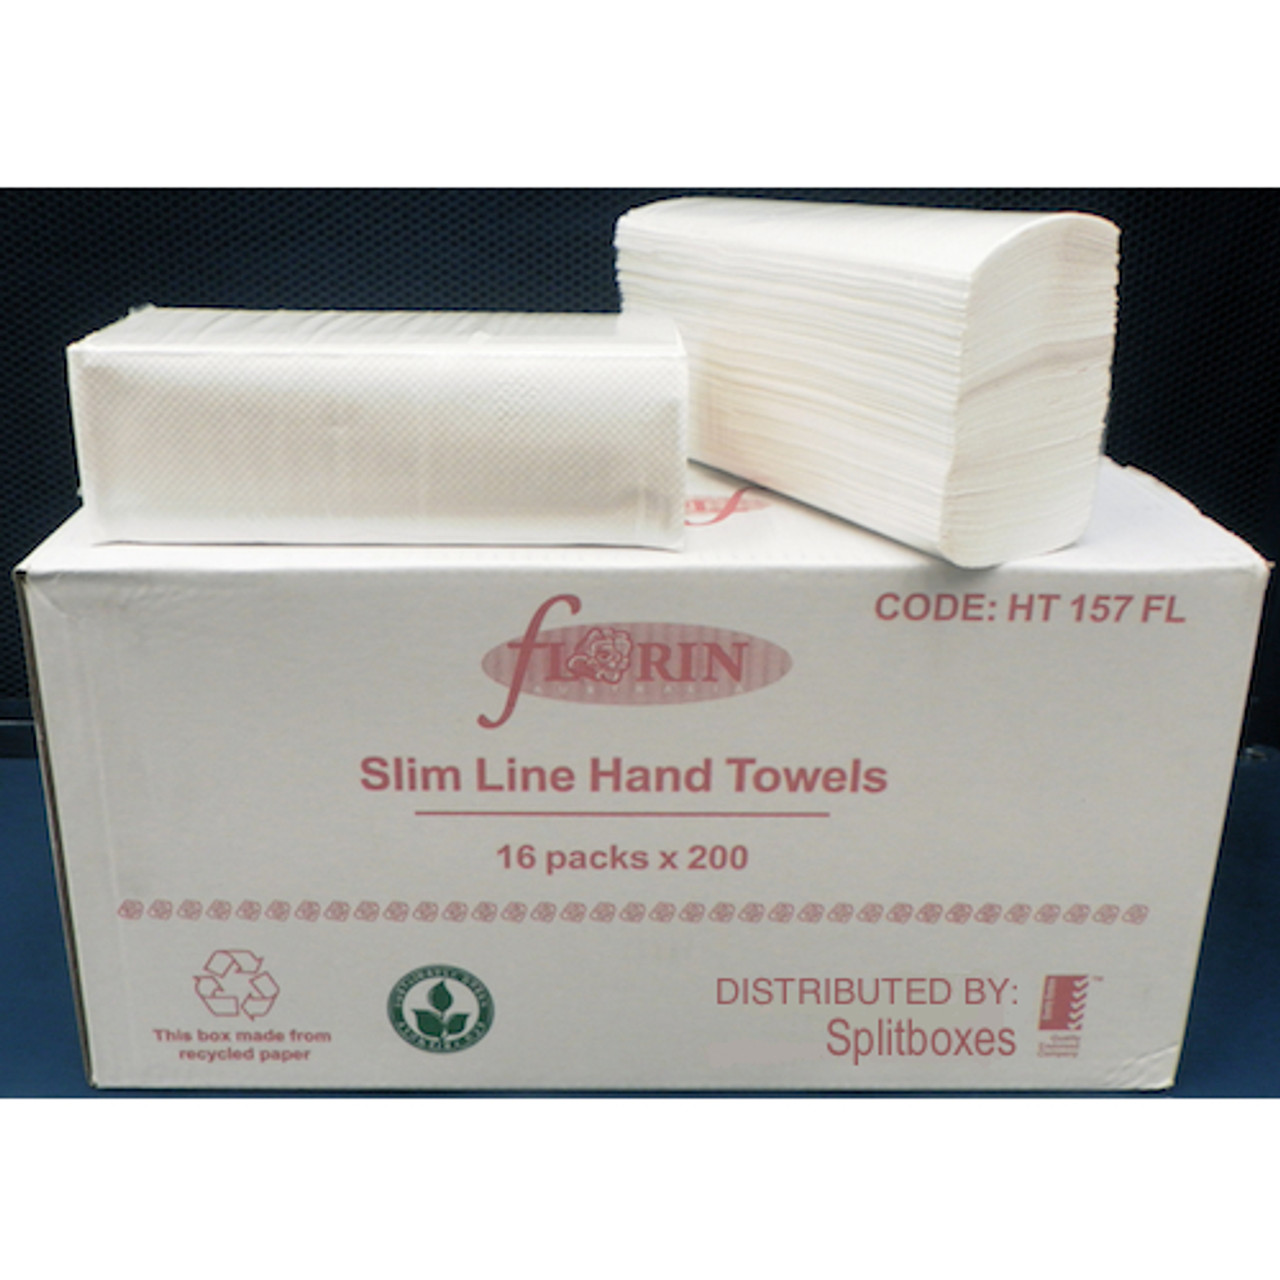 Florin Slimline Multifold Hand Towel 16 Packs x 200 Towels (HT157FL)  Florin Products